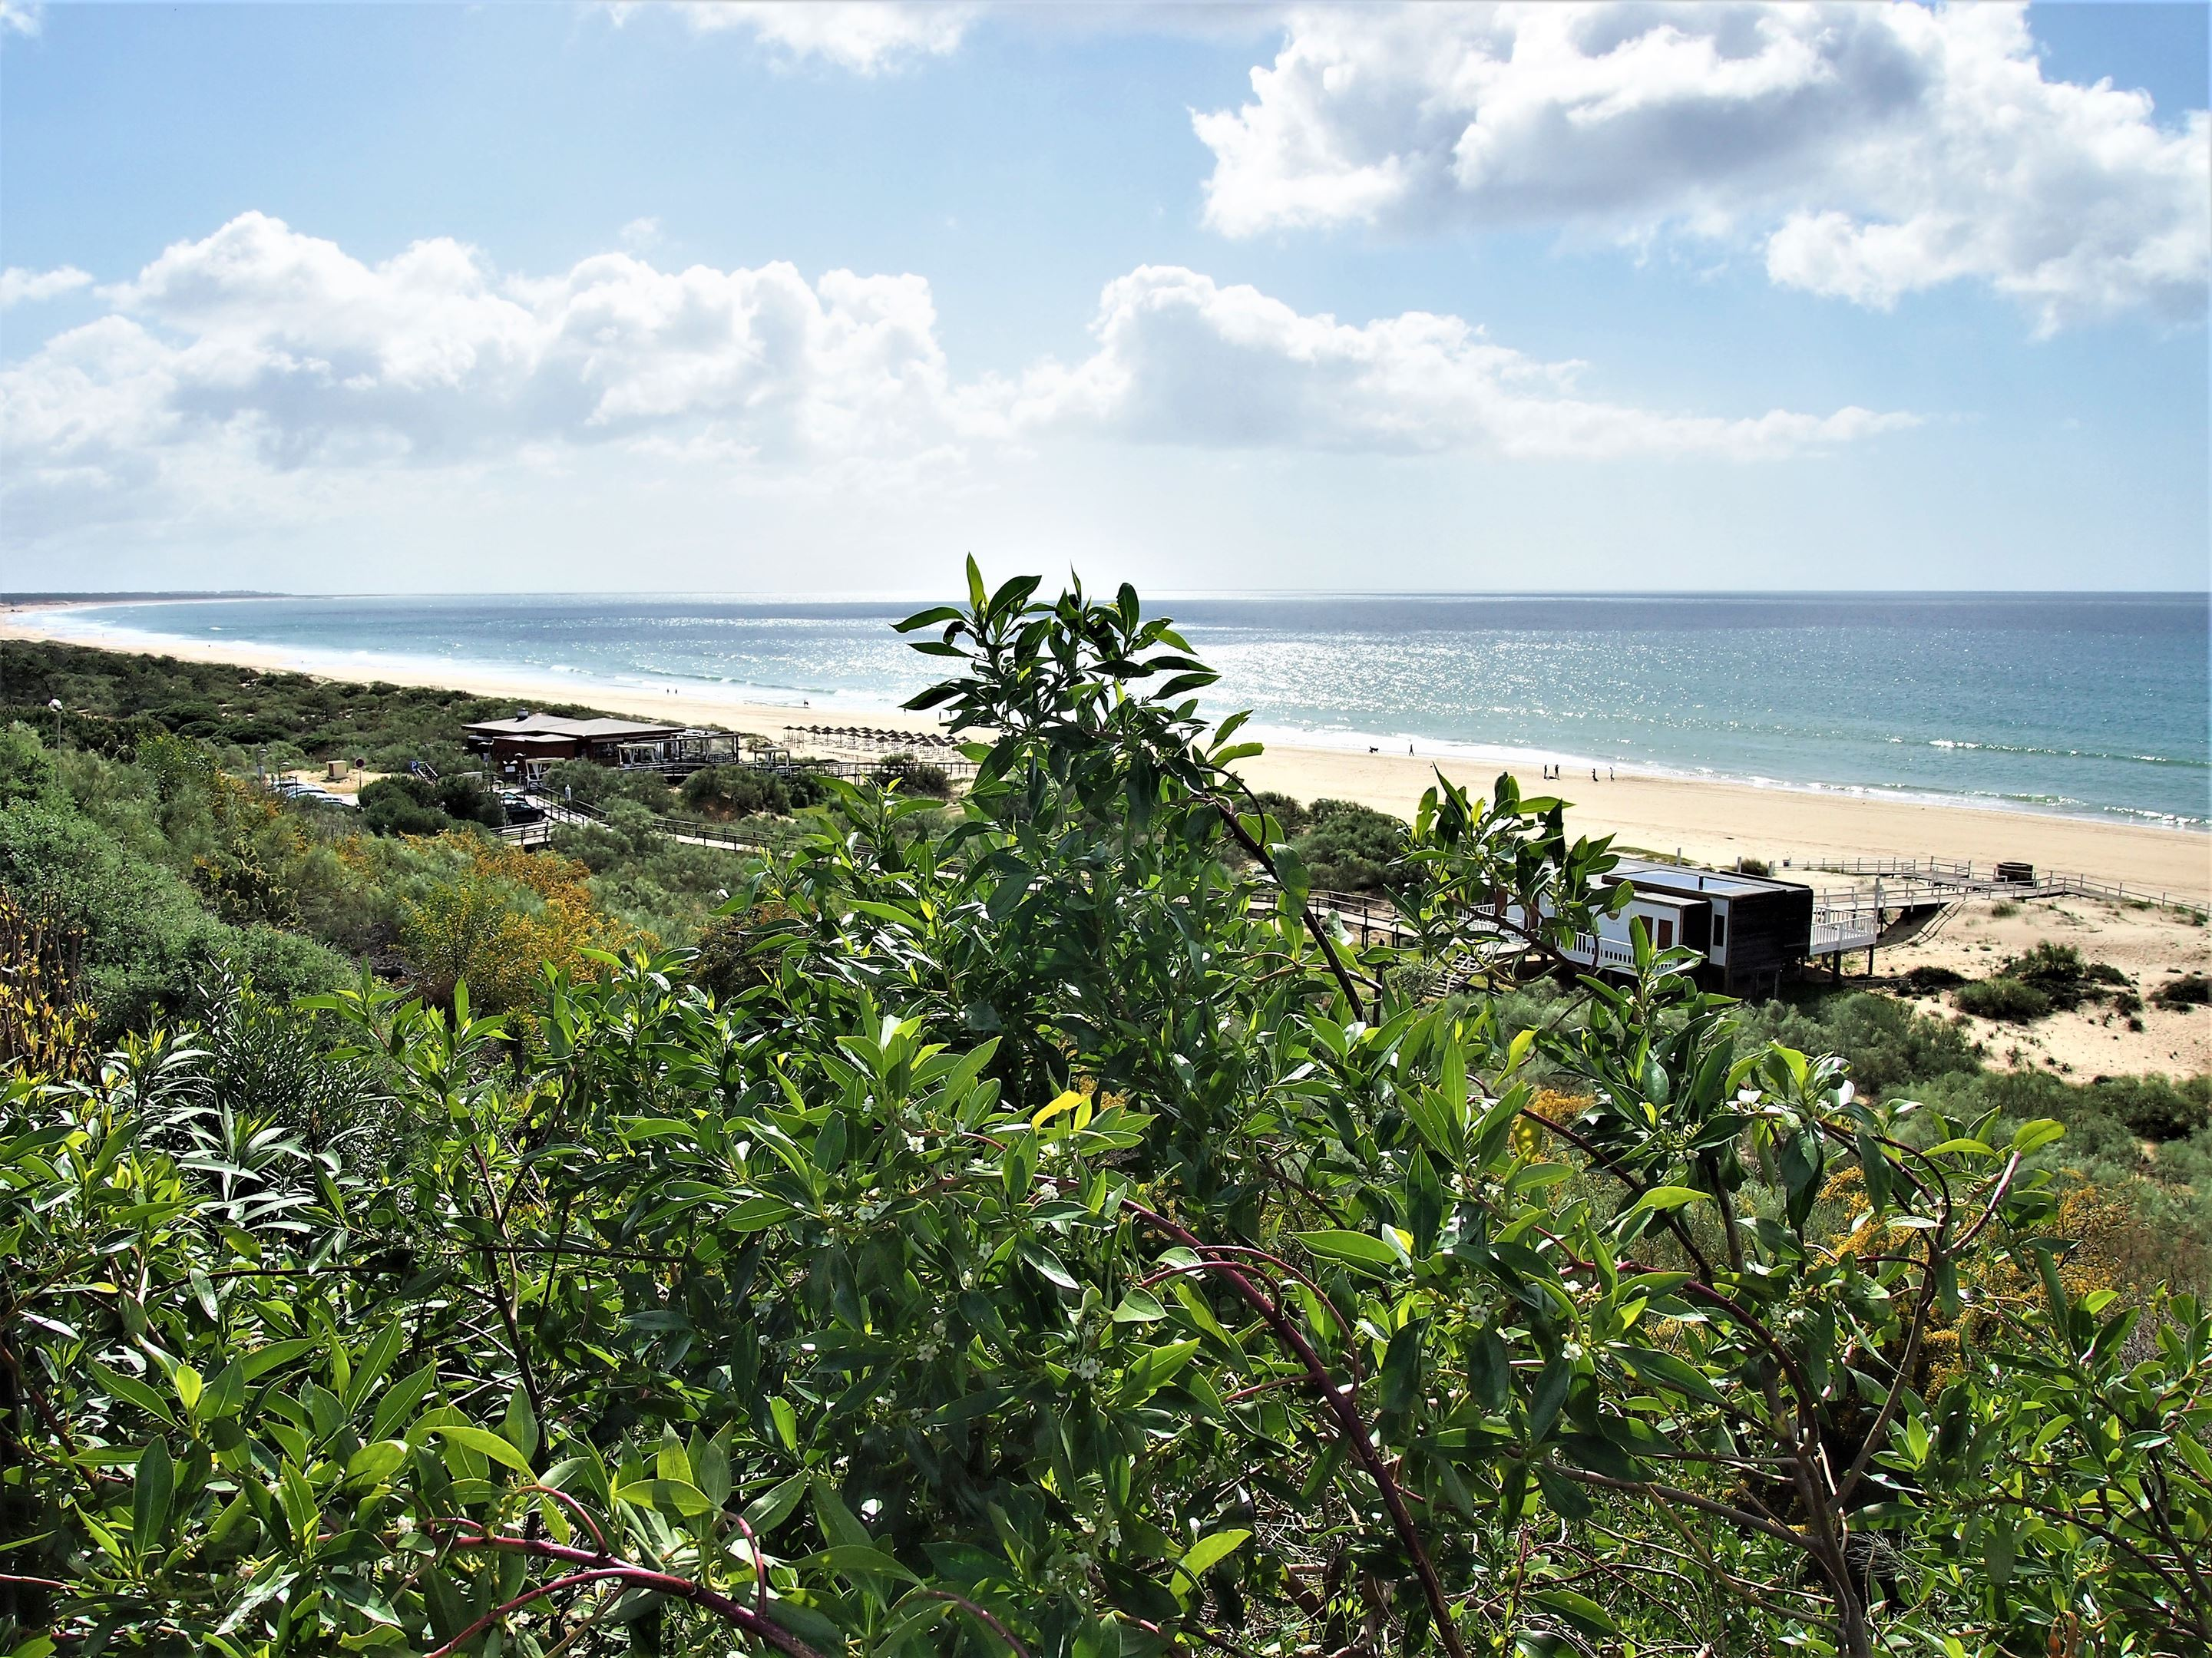 Praia Verde, in the Castro Marim region of the Algarve